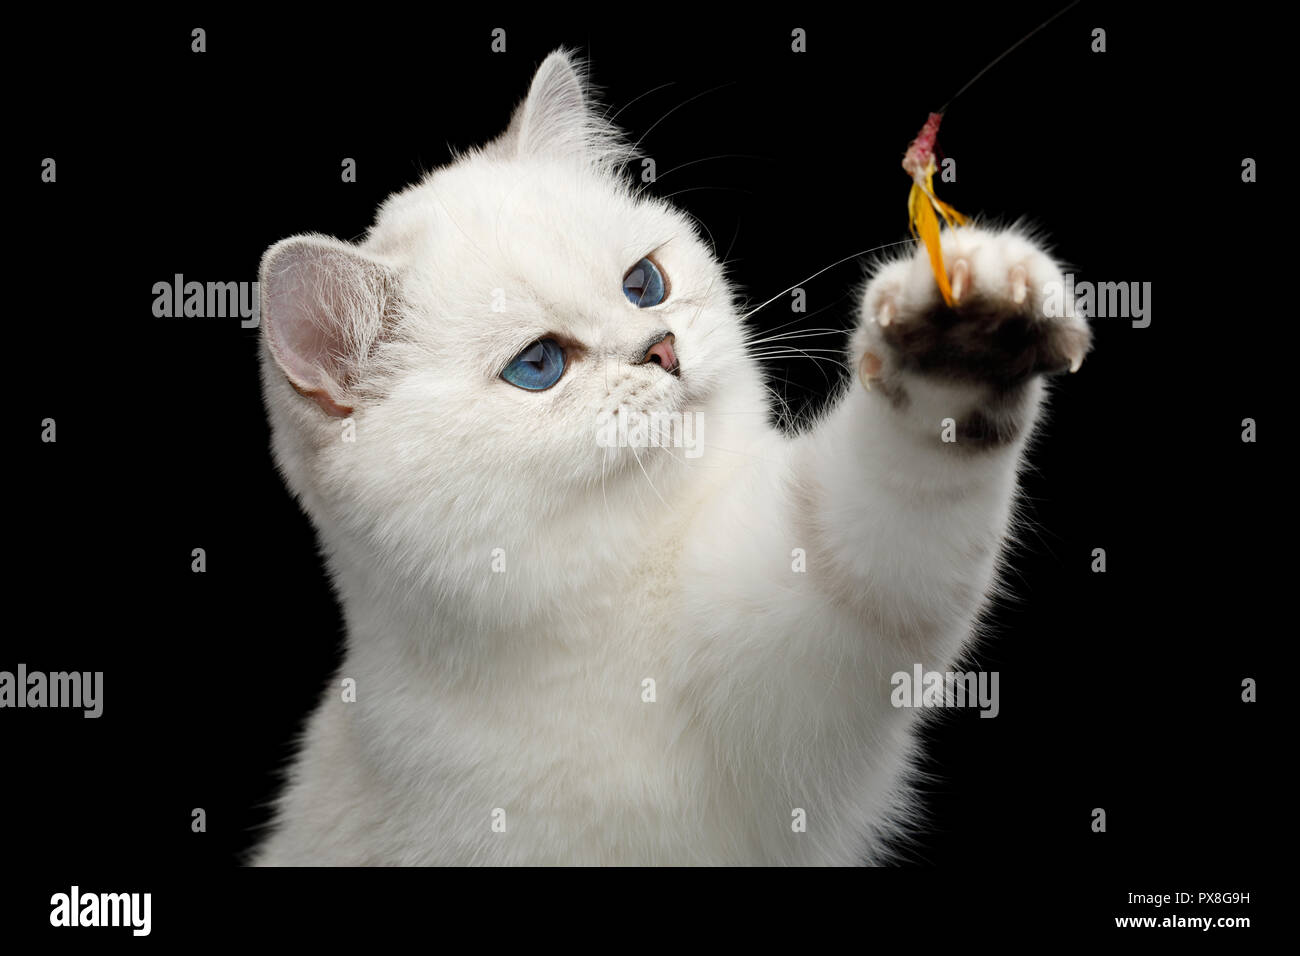 Portrait of Playful British White Cat, blue eyes, catching paw with toy on Isolated Black Background, front view - Stock Image